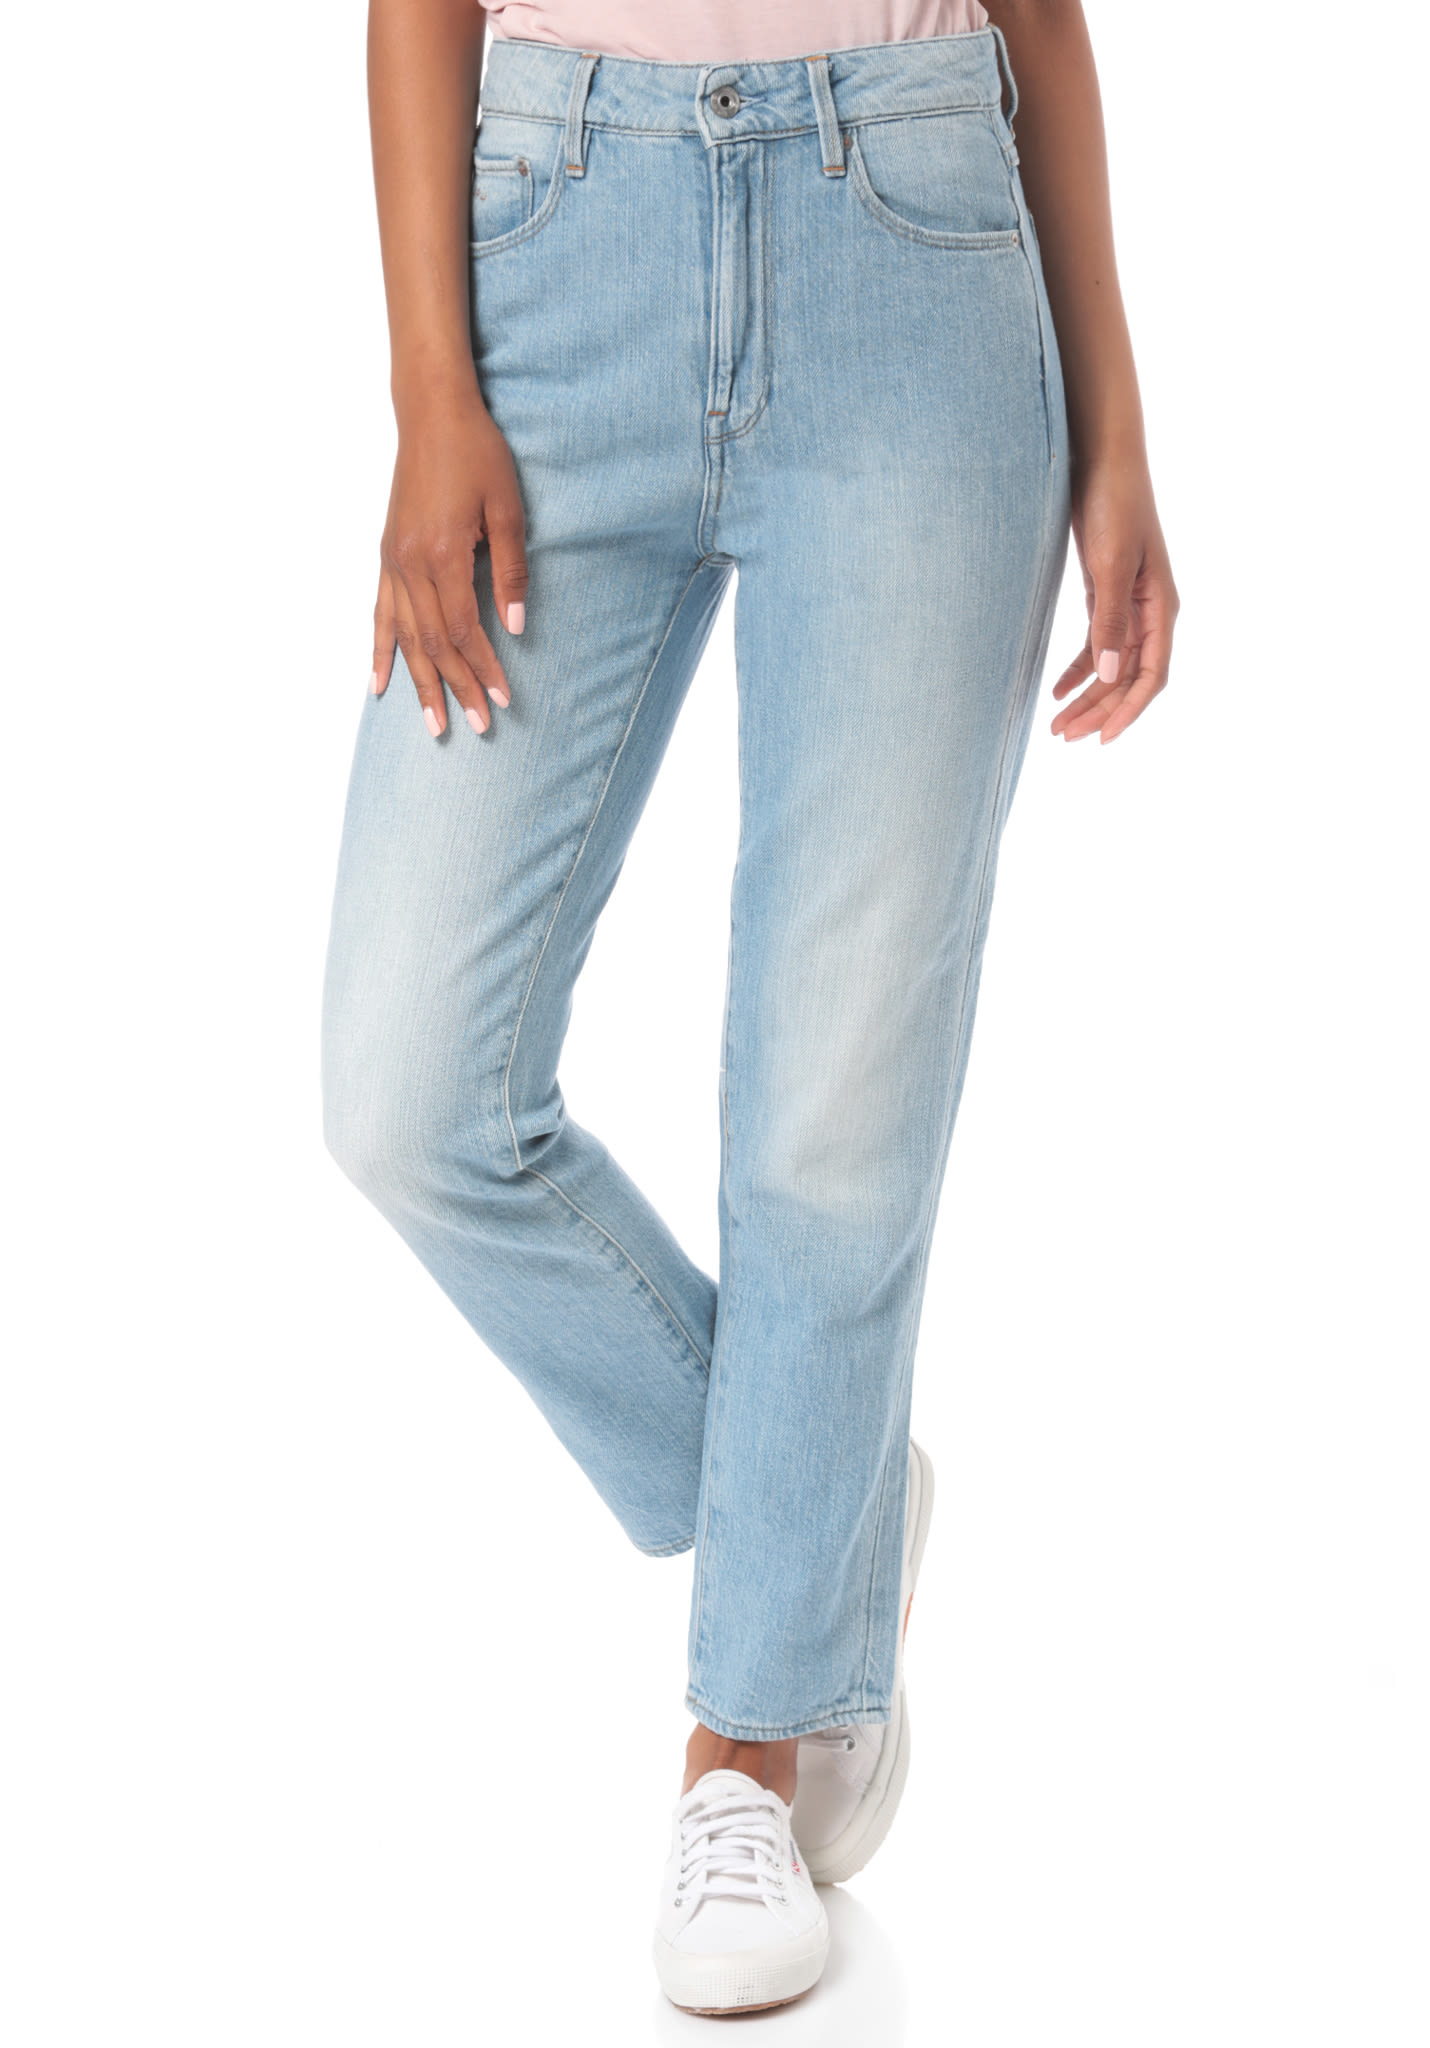 2a64d9724 G-STAR 3301 High Straight 90 S Ankle - Denim Jeans for Women - Blue -  Planet Sports